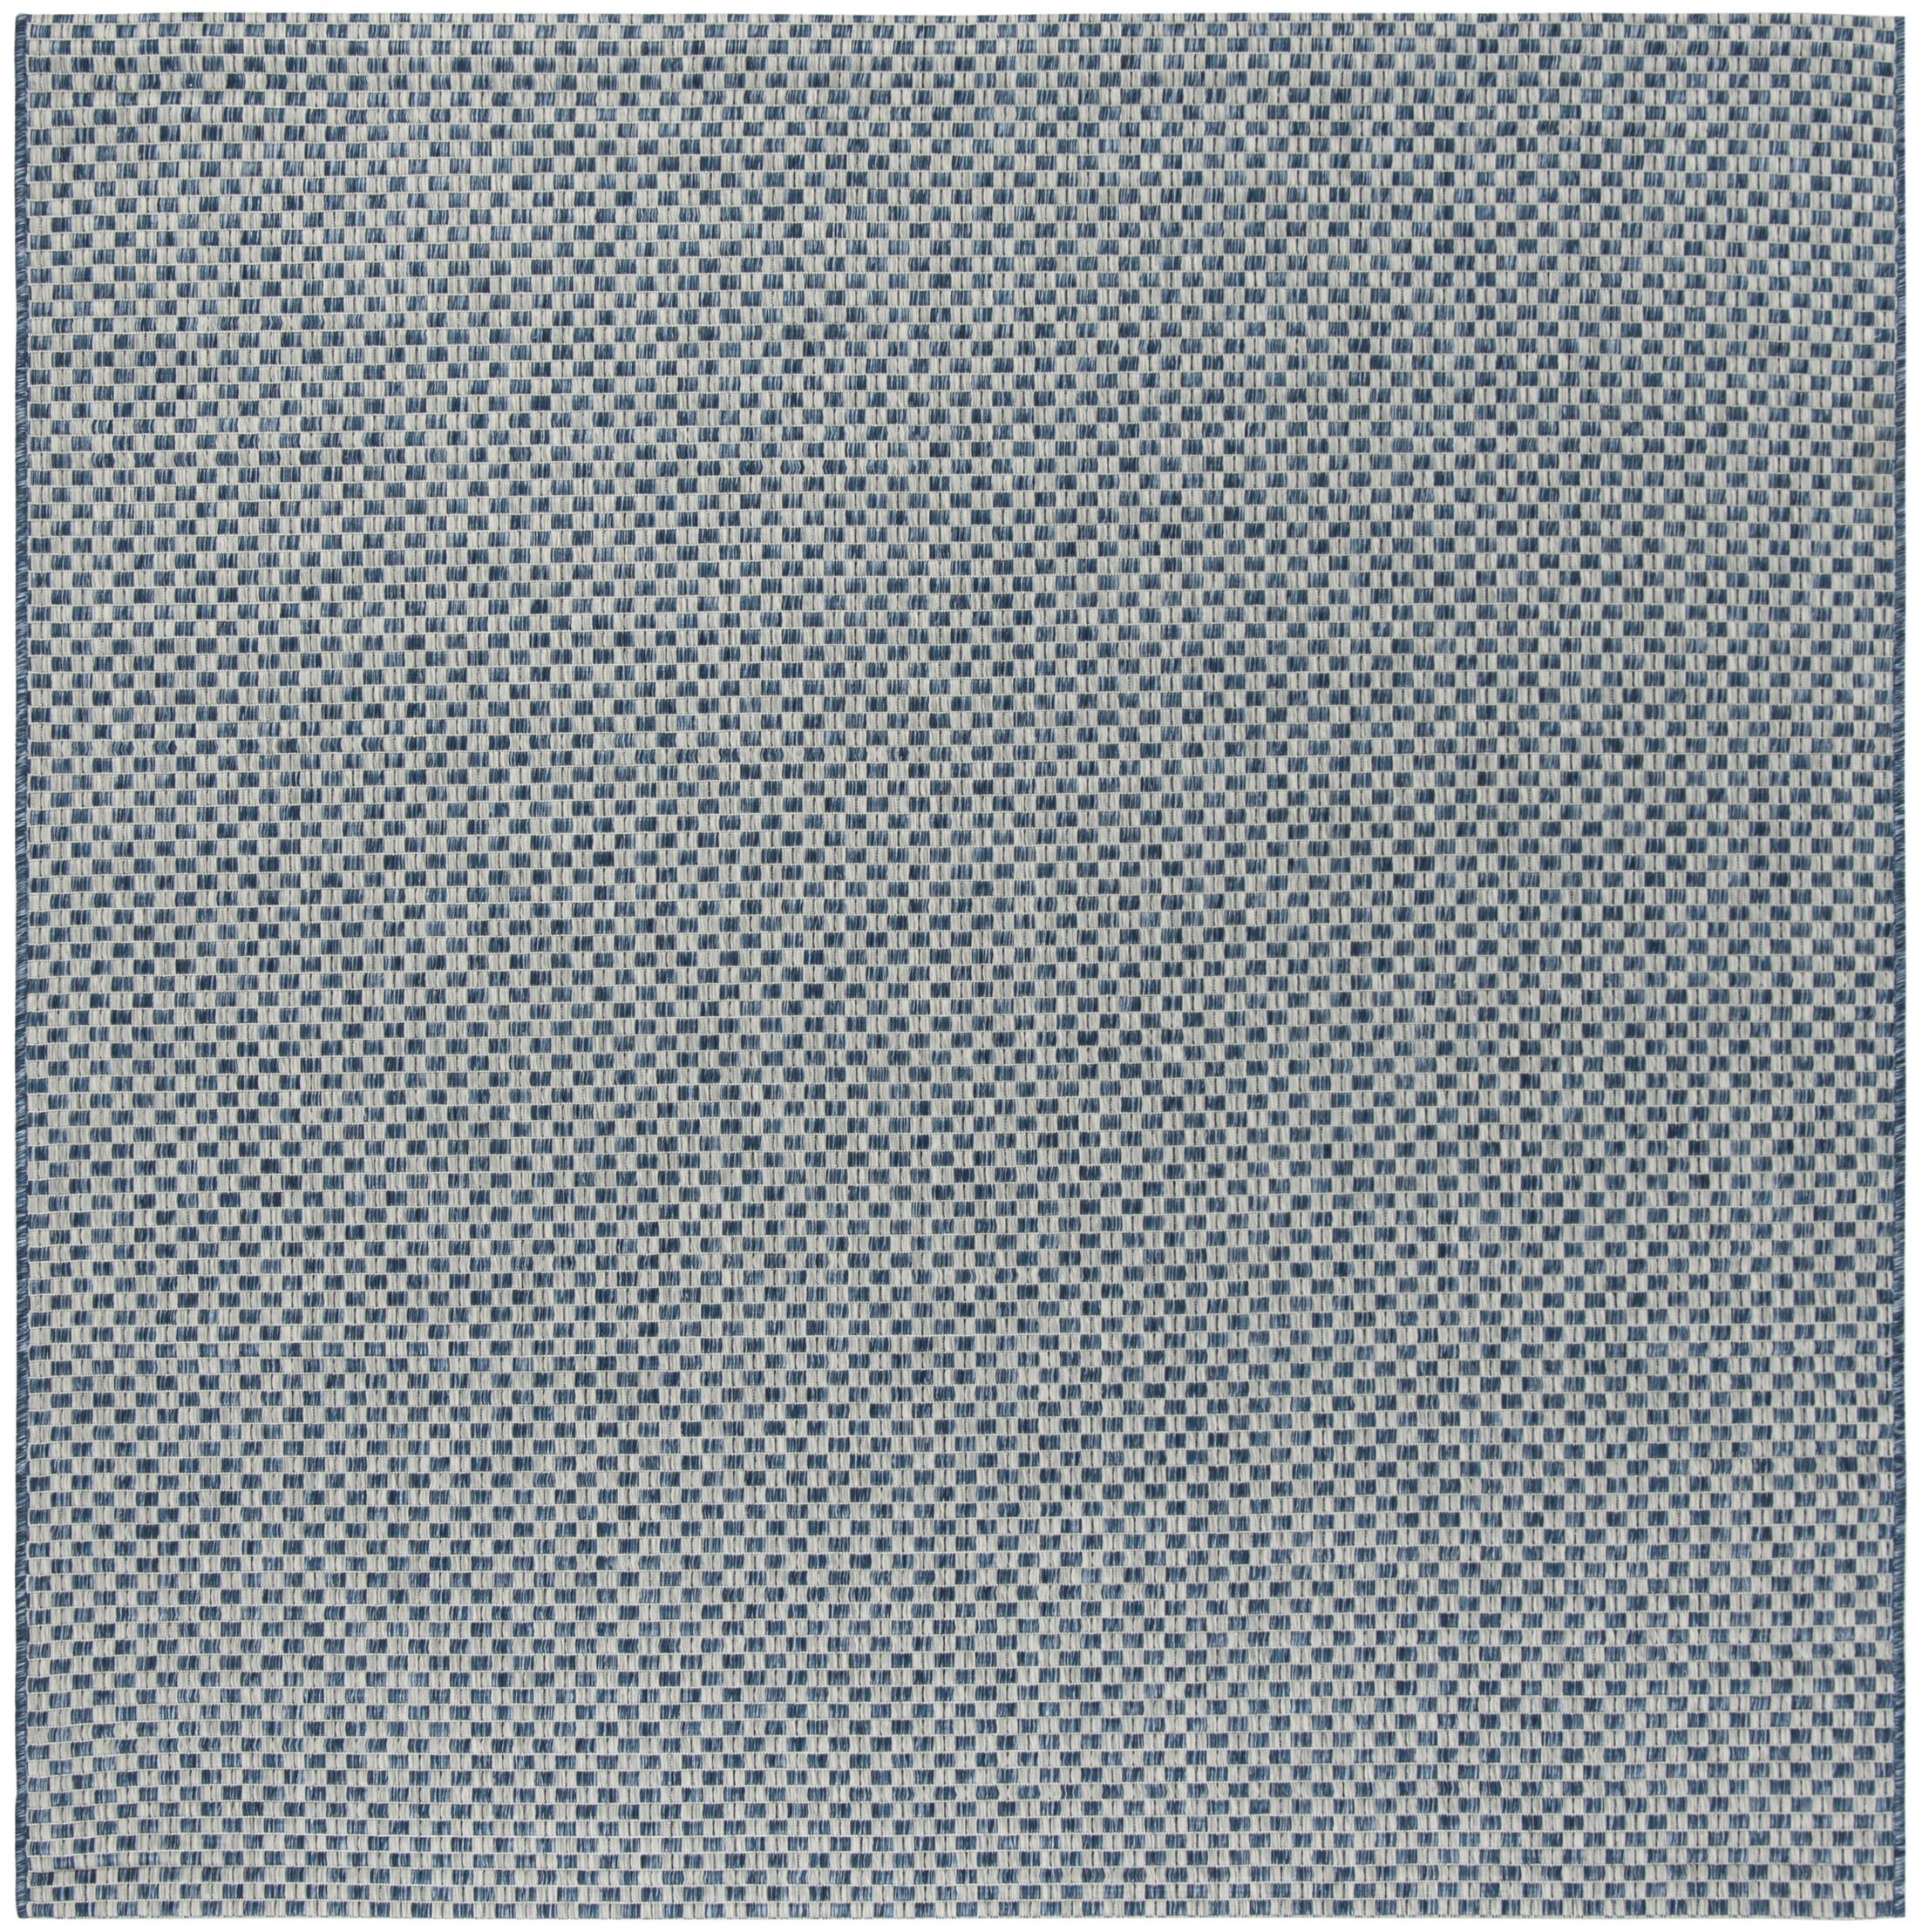 Jefferson Place Blue/Light Gray Outdoor Area Rug Rug Size: Square 6'7